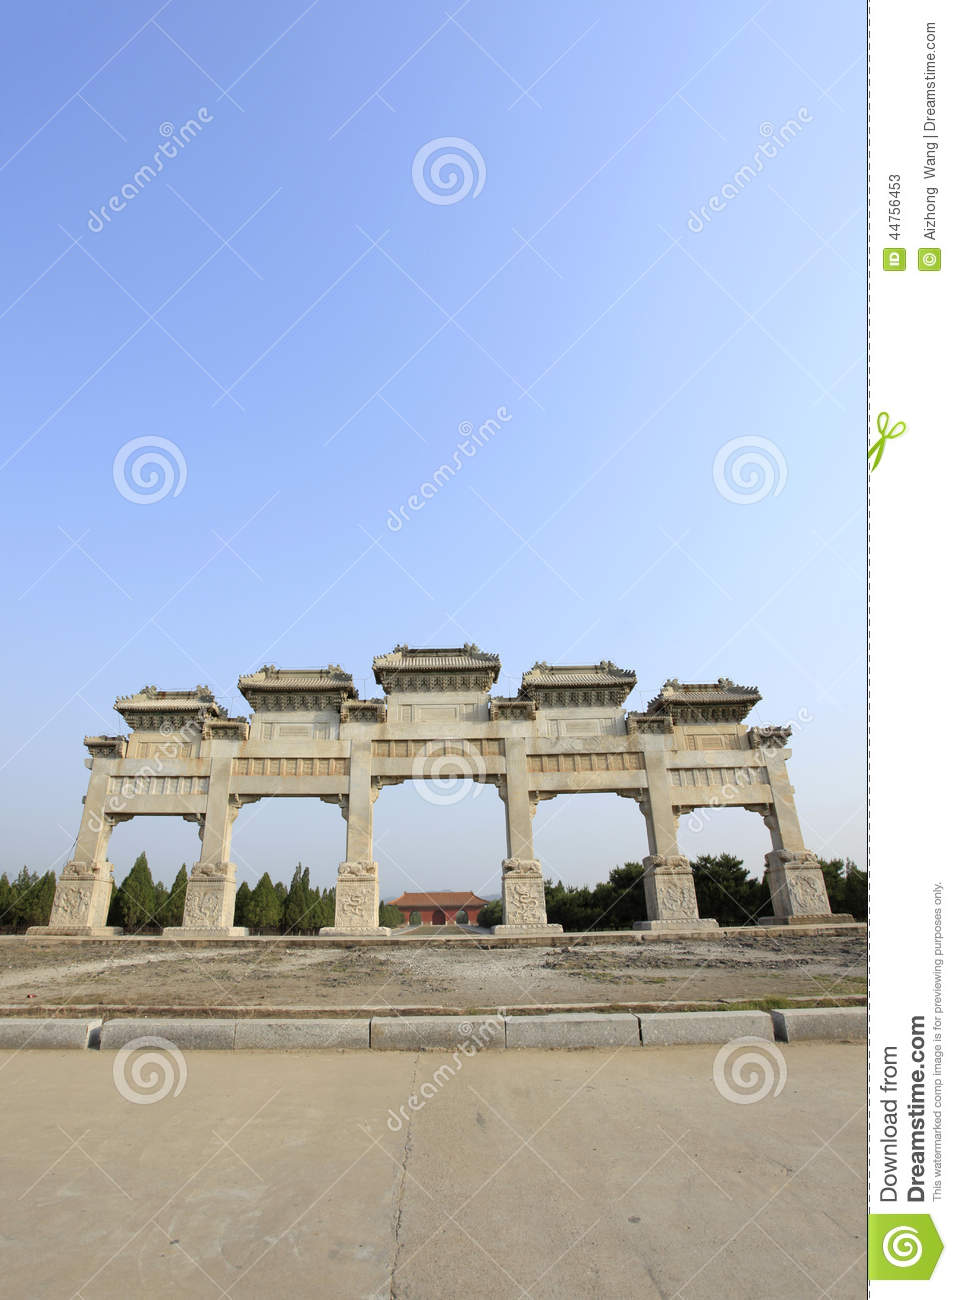 Clear dongling stone archway